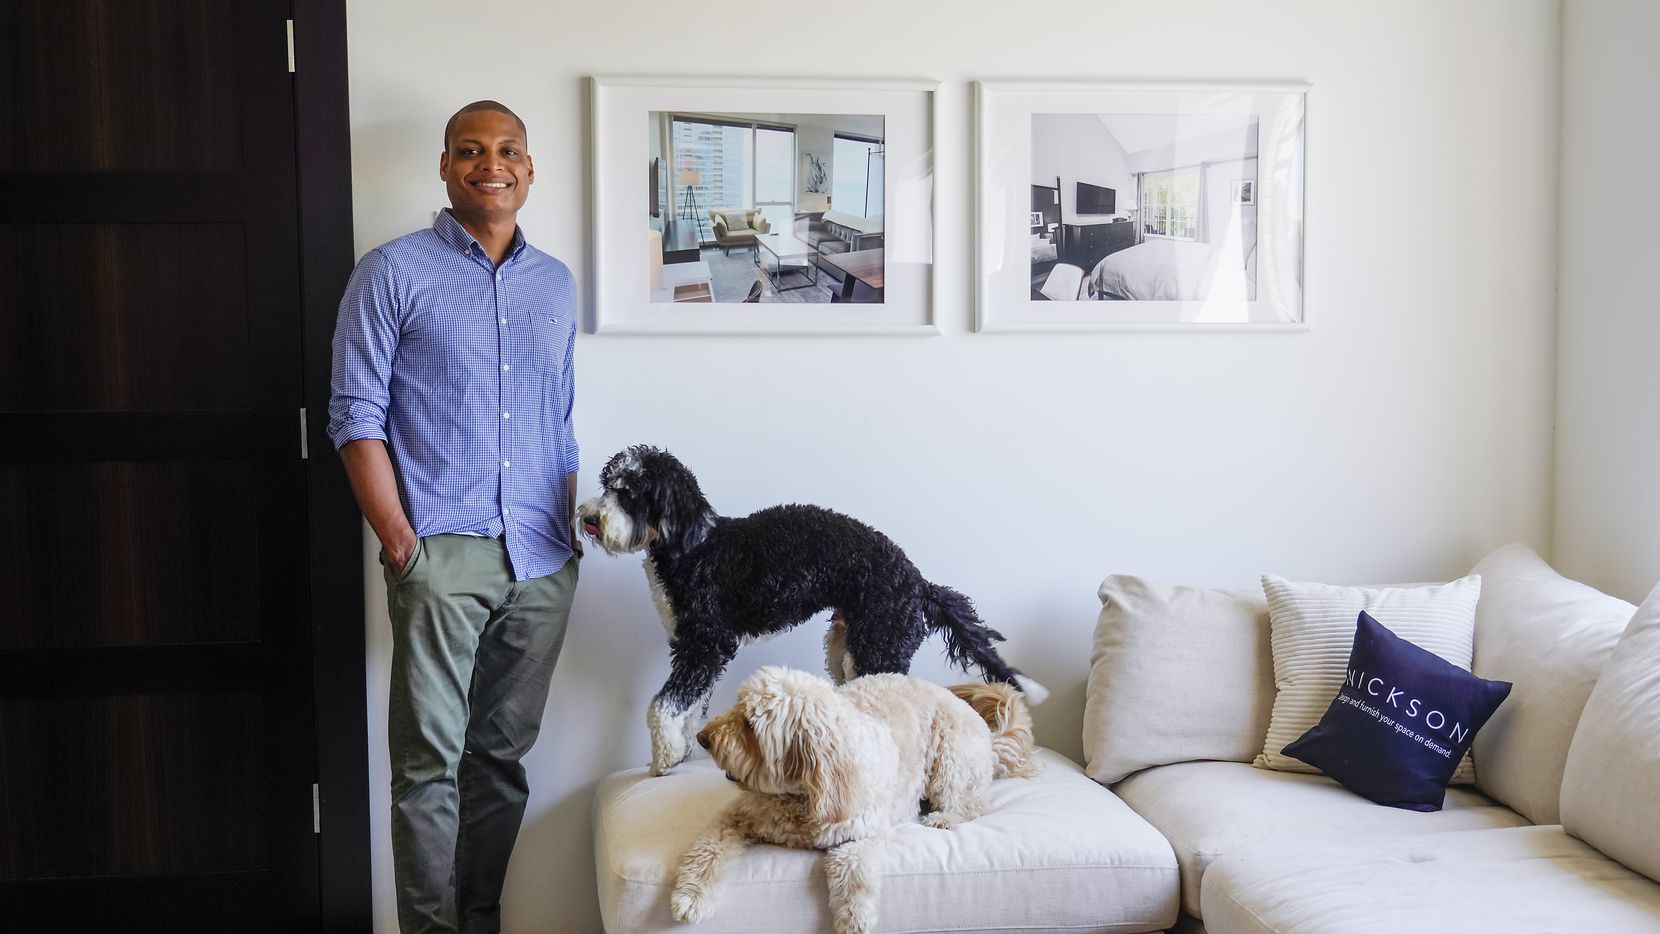 Cameron Johnson is the founder of Dallas-based apartment furnishings startup Nickson.